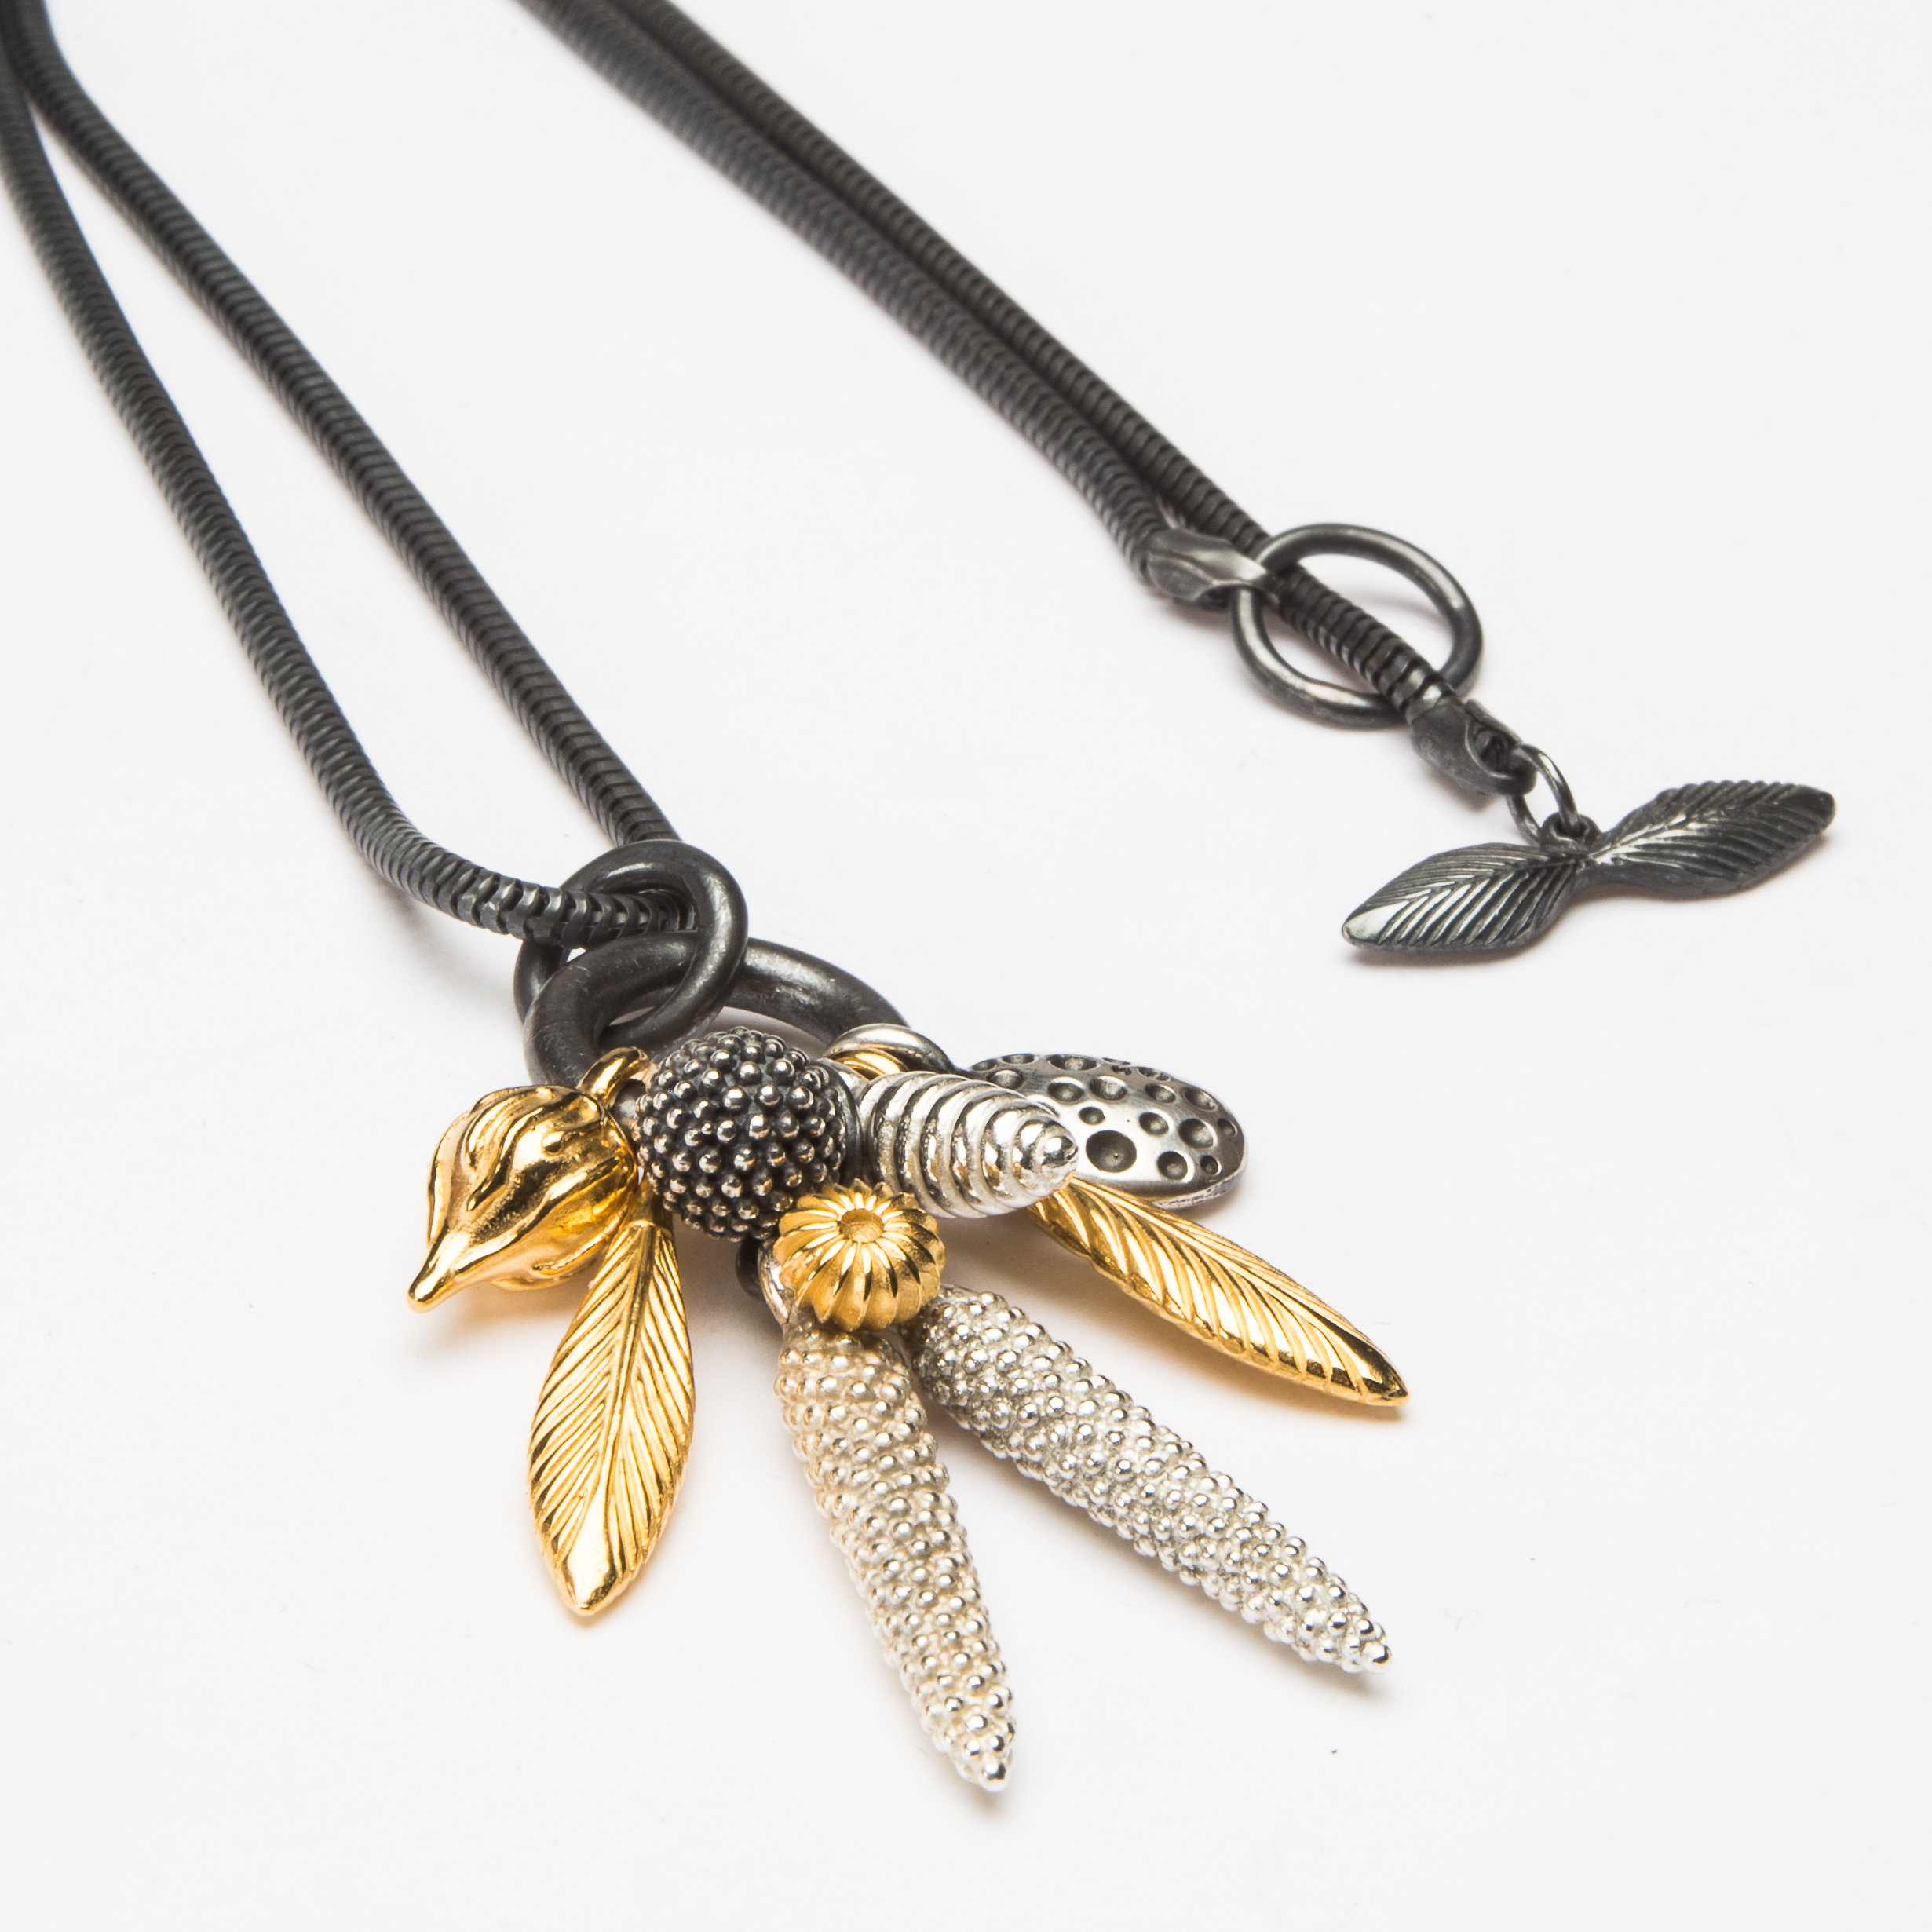 Catherine Hills Jewellery.  Dream Catcher Feather Cluster Pendant - Oxidised Silver, Silver and Gold Plated Silver  .jpg